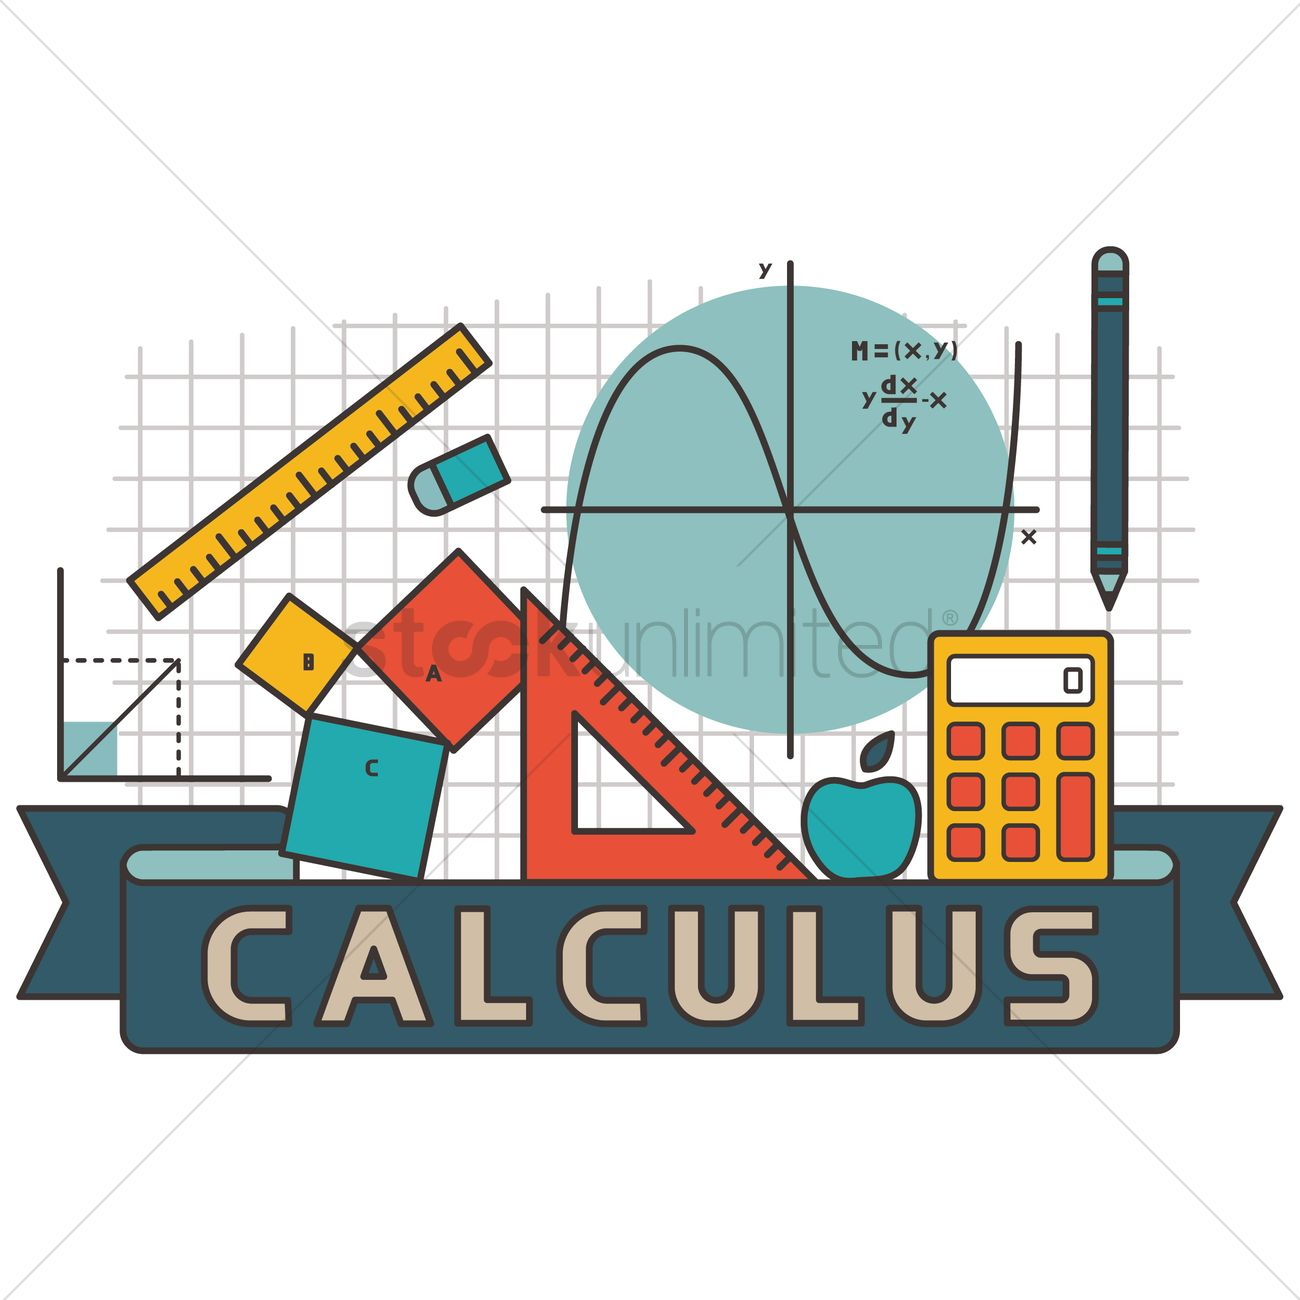 Geometry clipart basic calculus. Free download best on